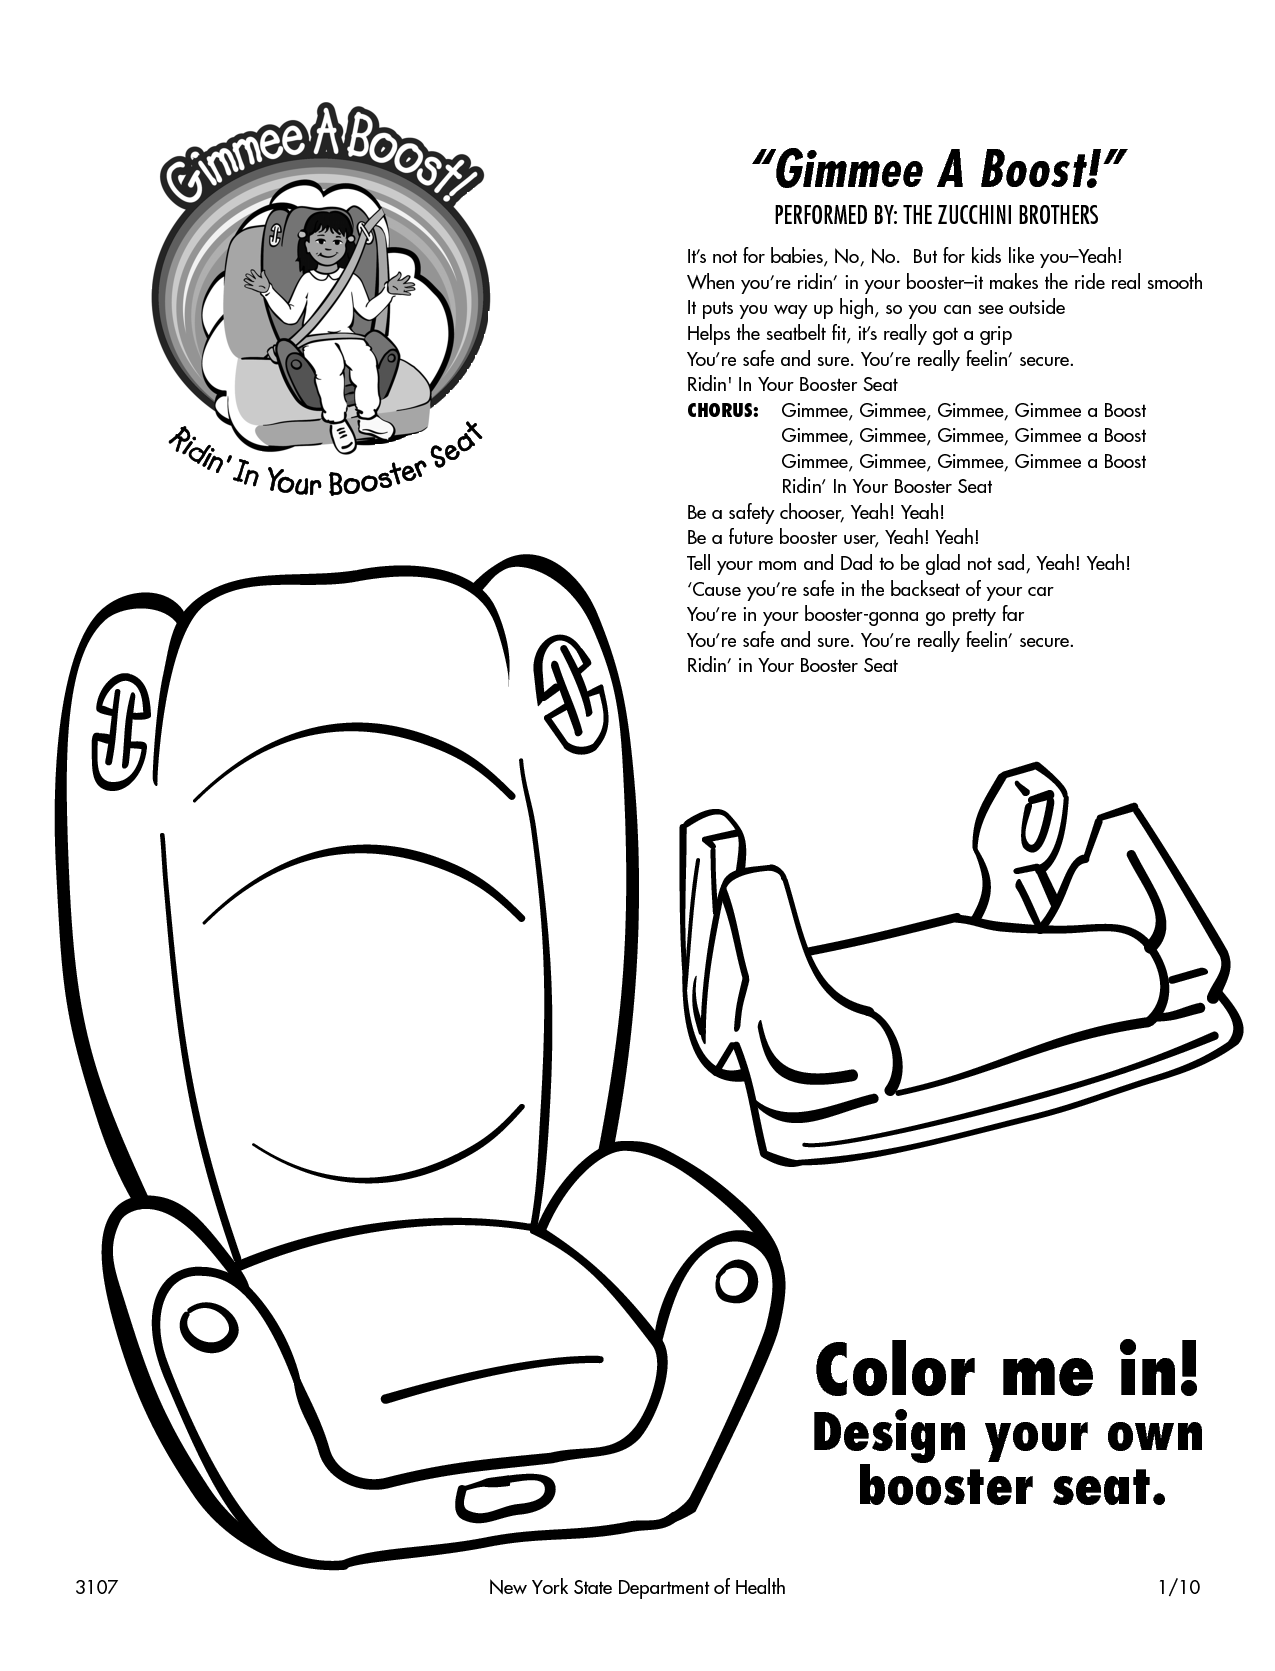 Carseat Saftey Coloring Pages Gimme A Boost Booster Seat Coloring Sheet Booster Booster Seat Coloring Pages